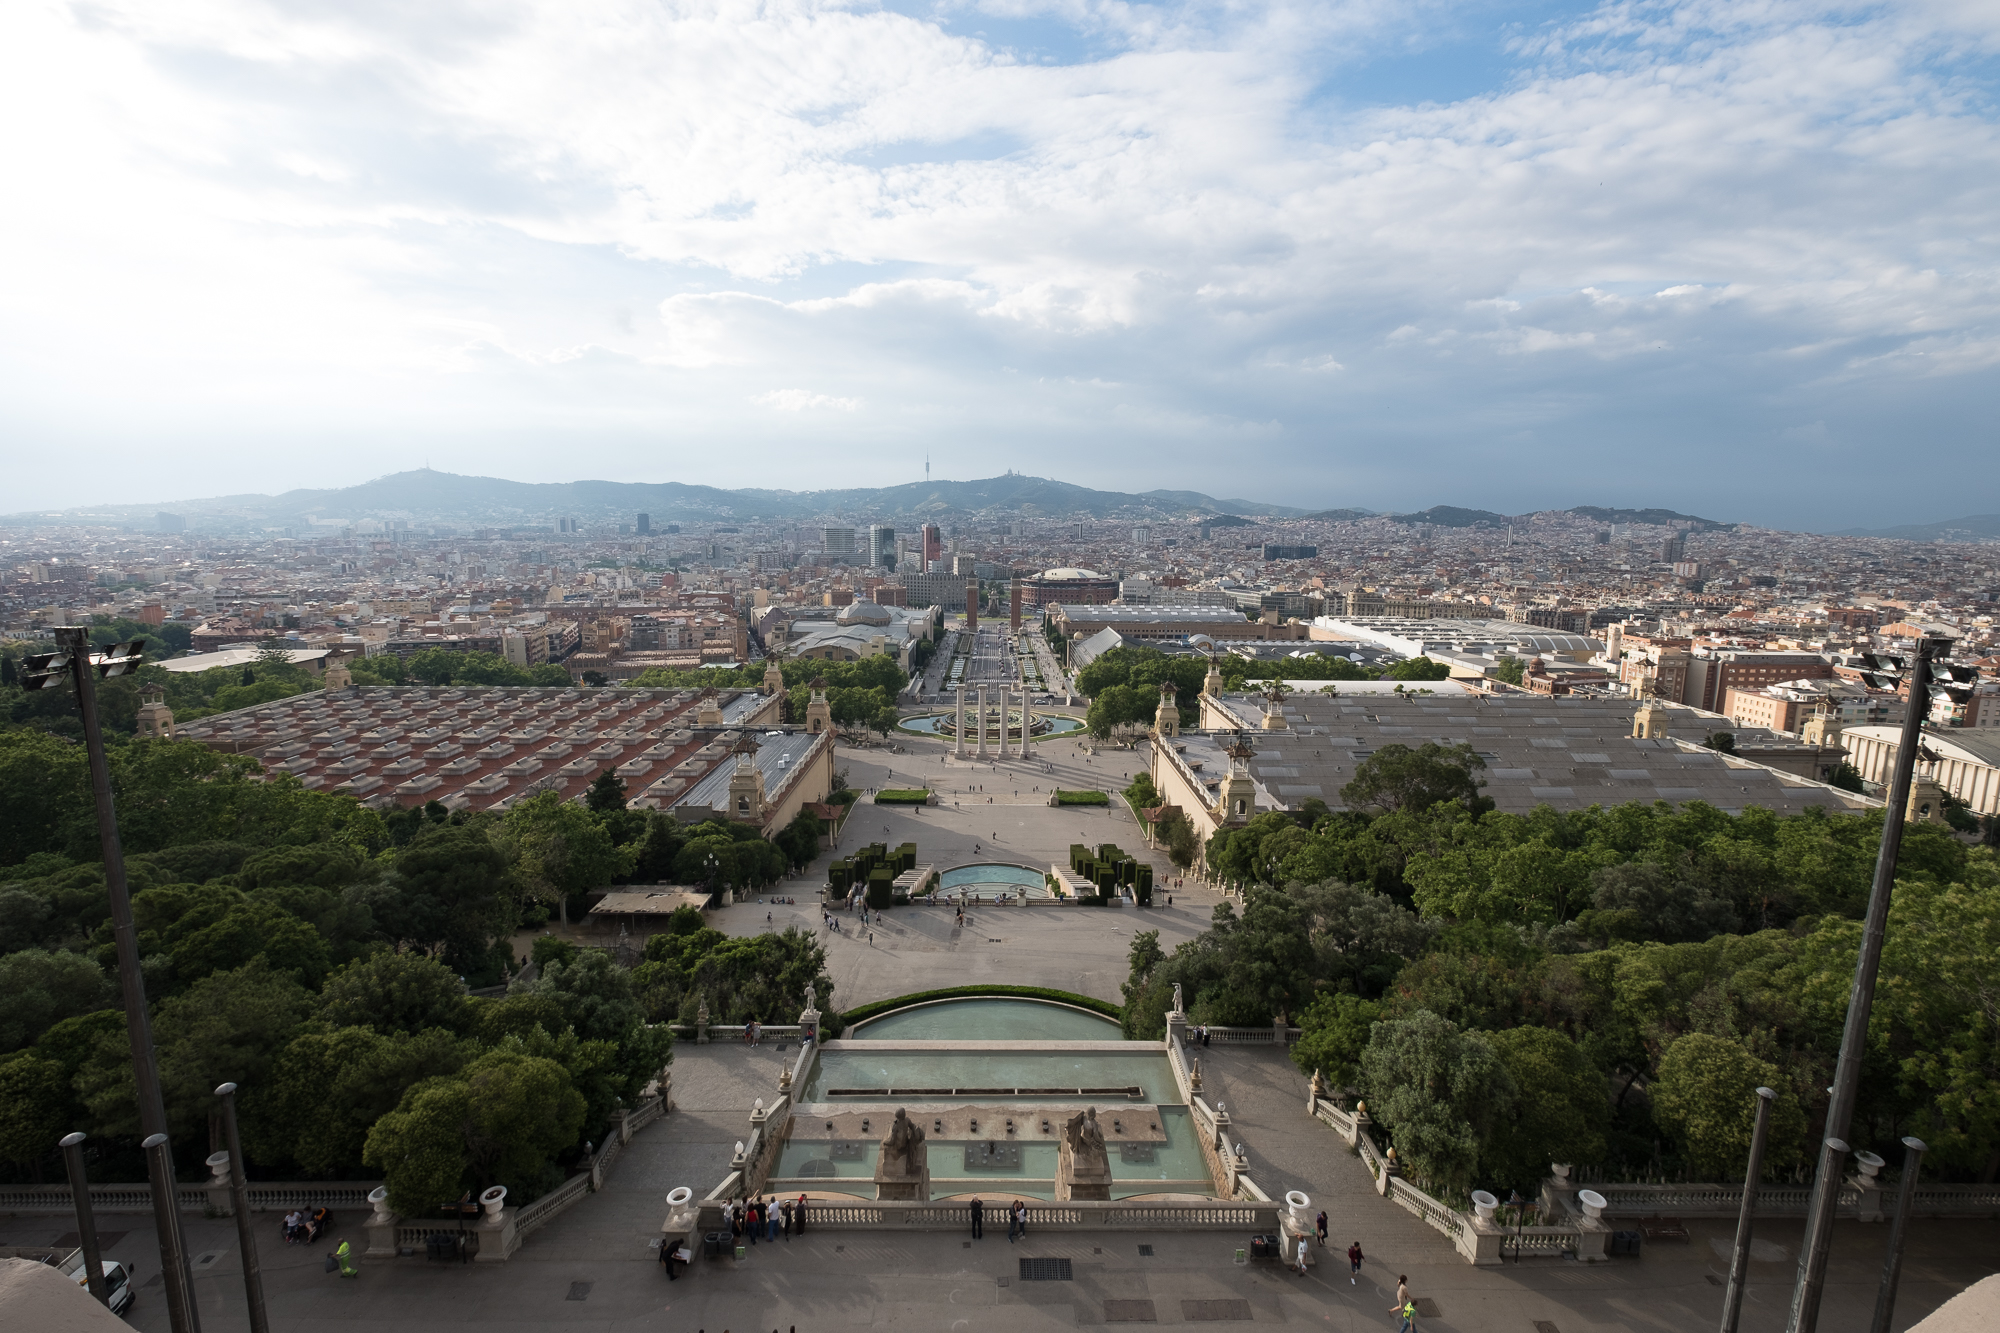 A photo taken from the roof of the Museu Nacional d'Art de Catalunya, looking out over Barcelona.